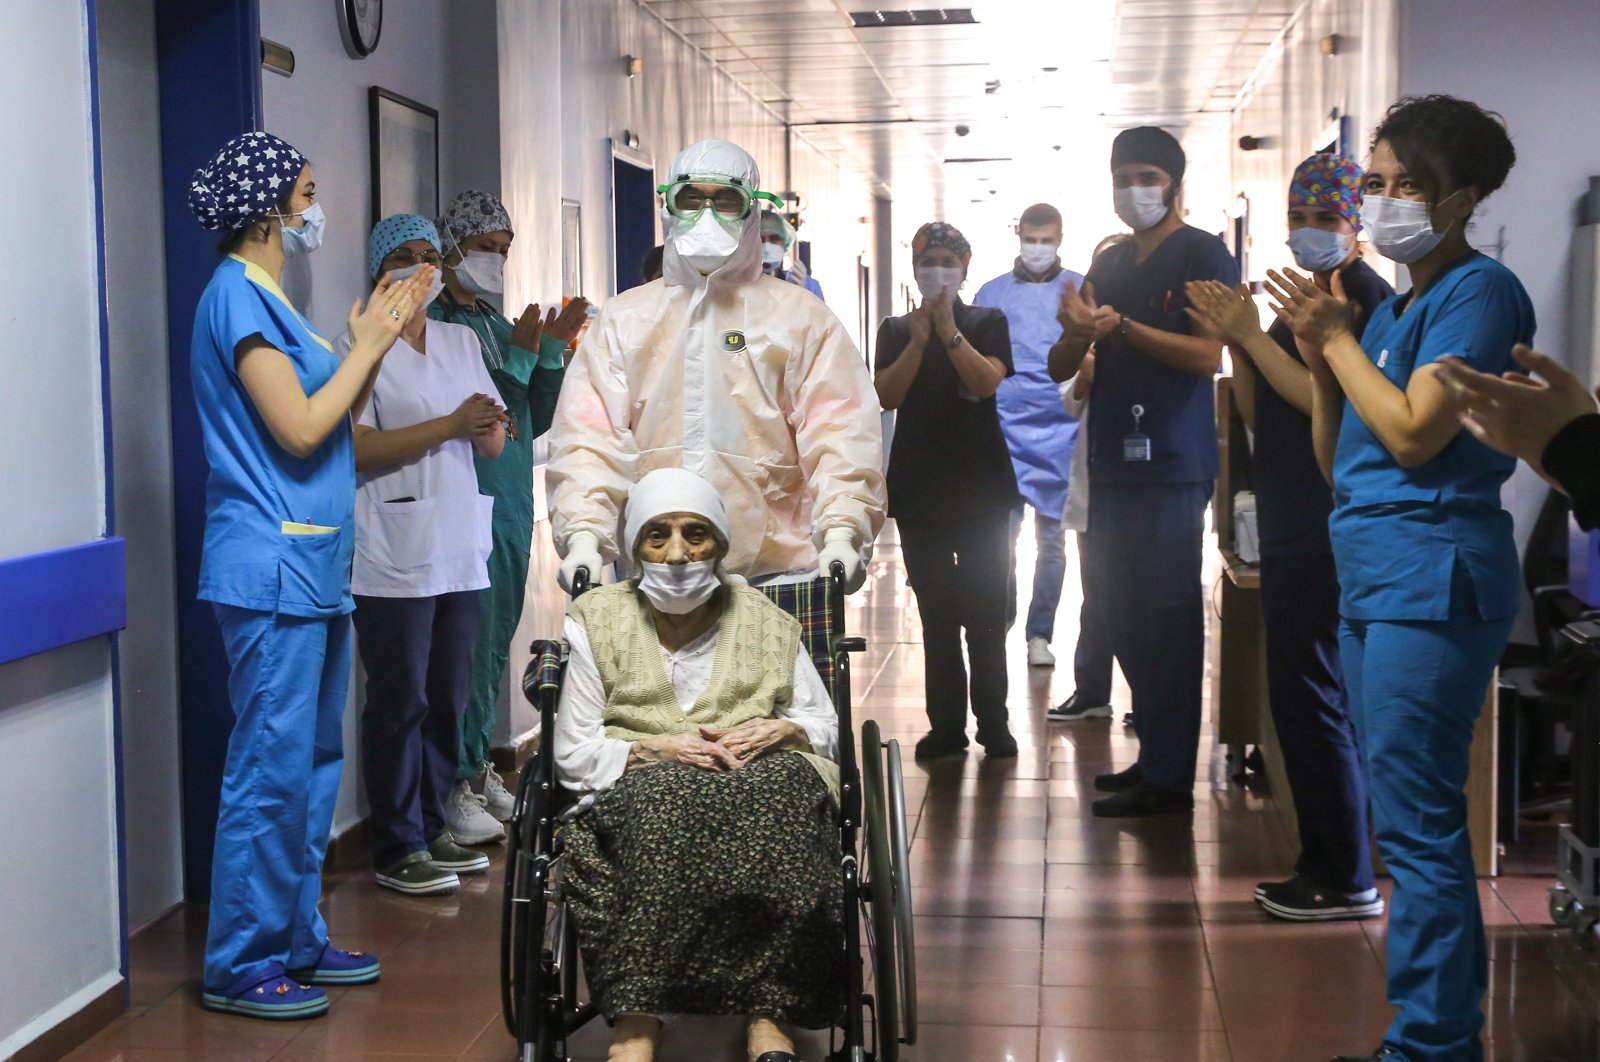 Havahan Karadeniz, 107, leaves Istanbul Training and Research Hospital as the hospital staff applauds her, in Istanbul, Turkey, April 14, 2020. (AA Photo)